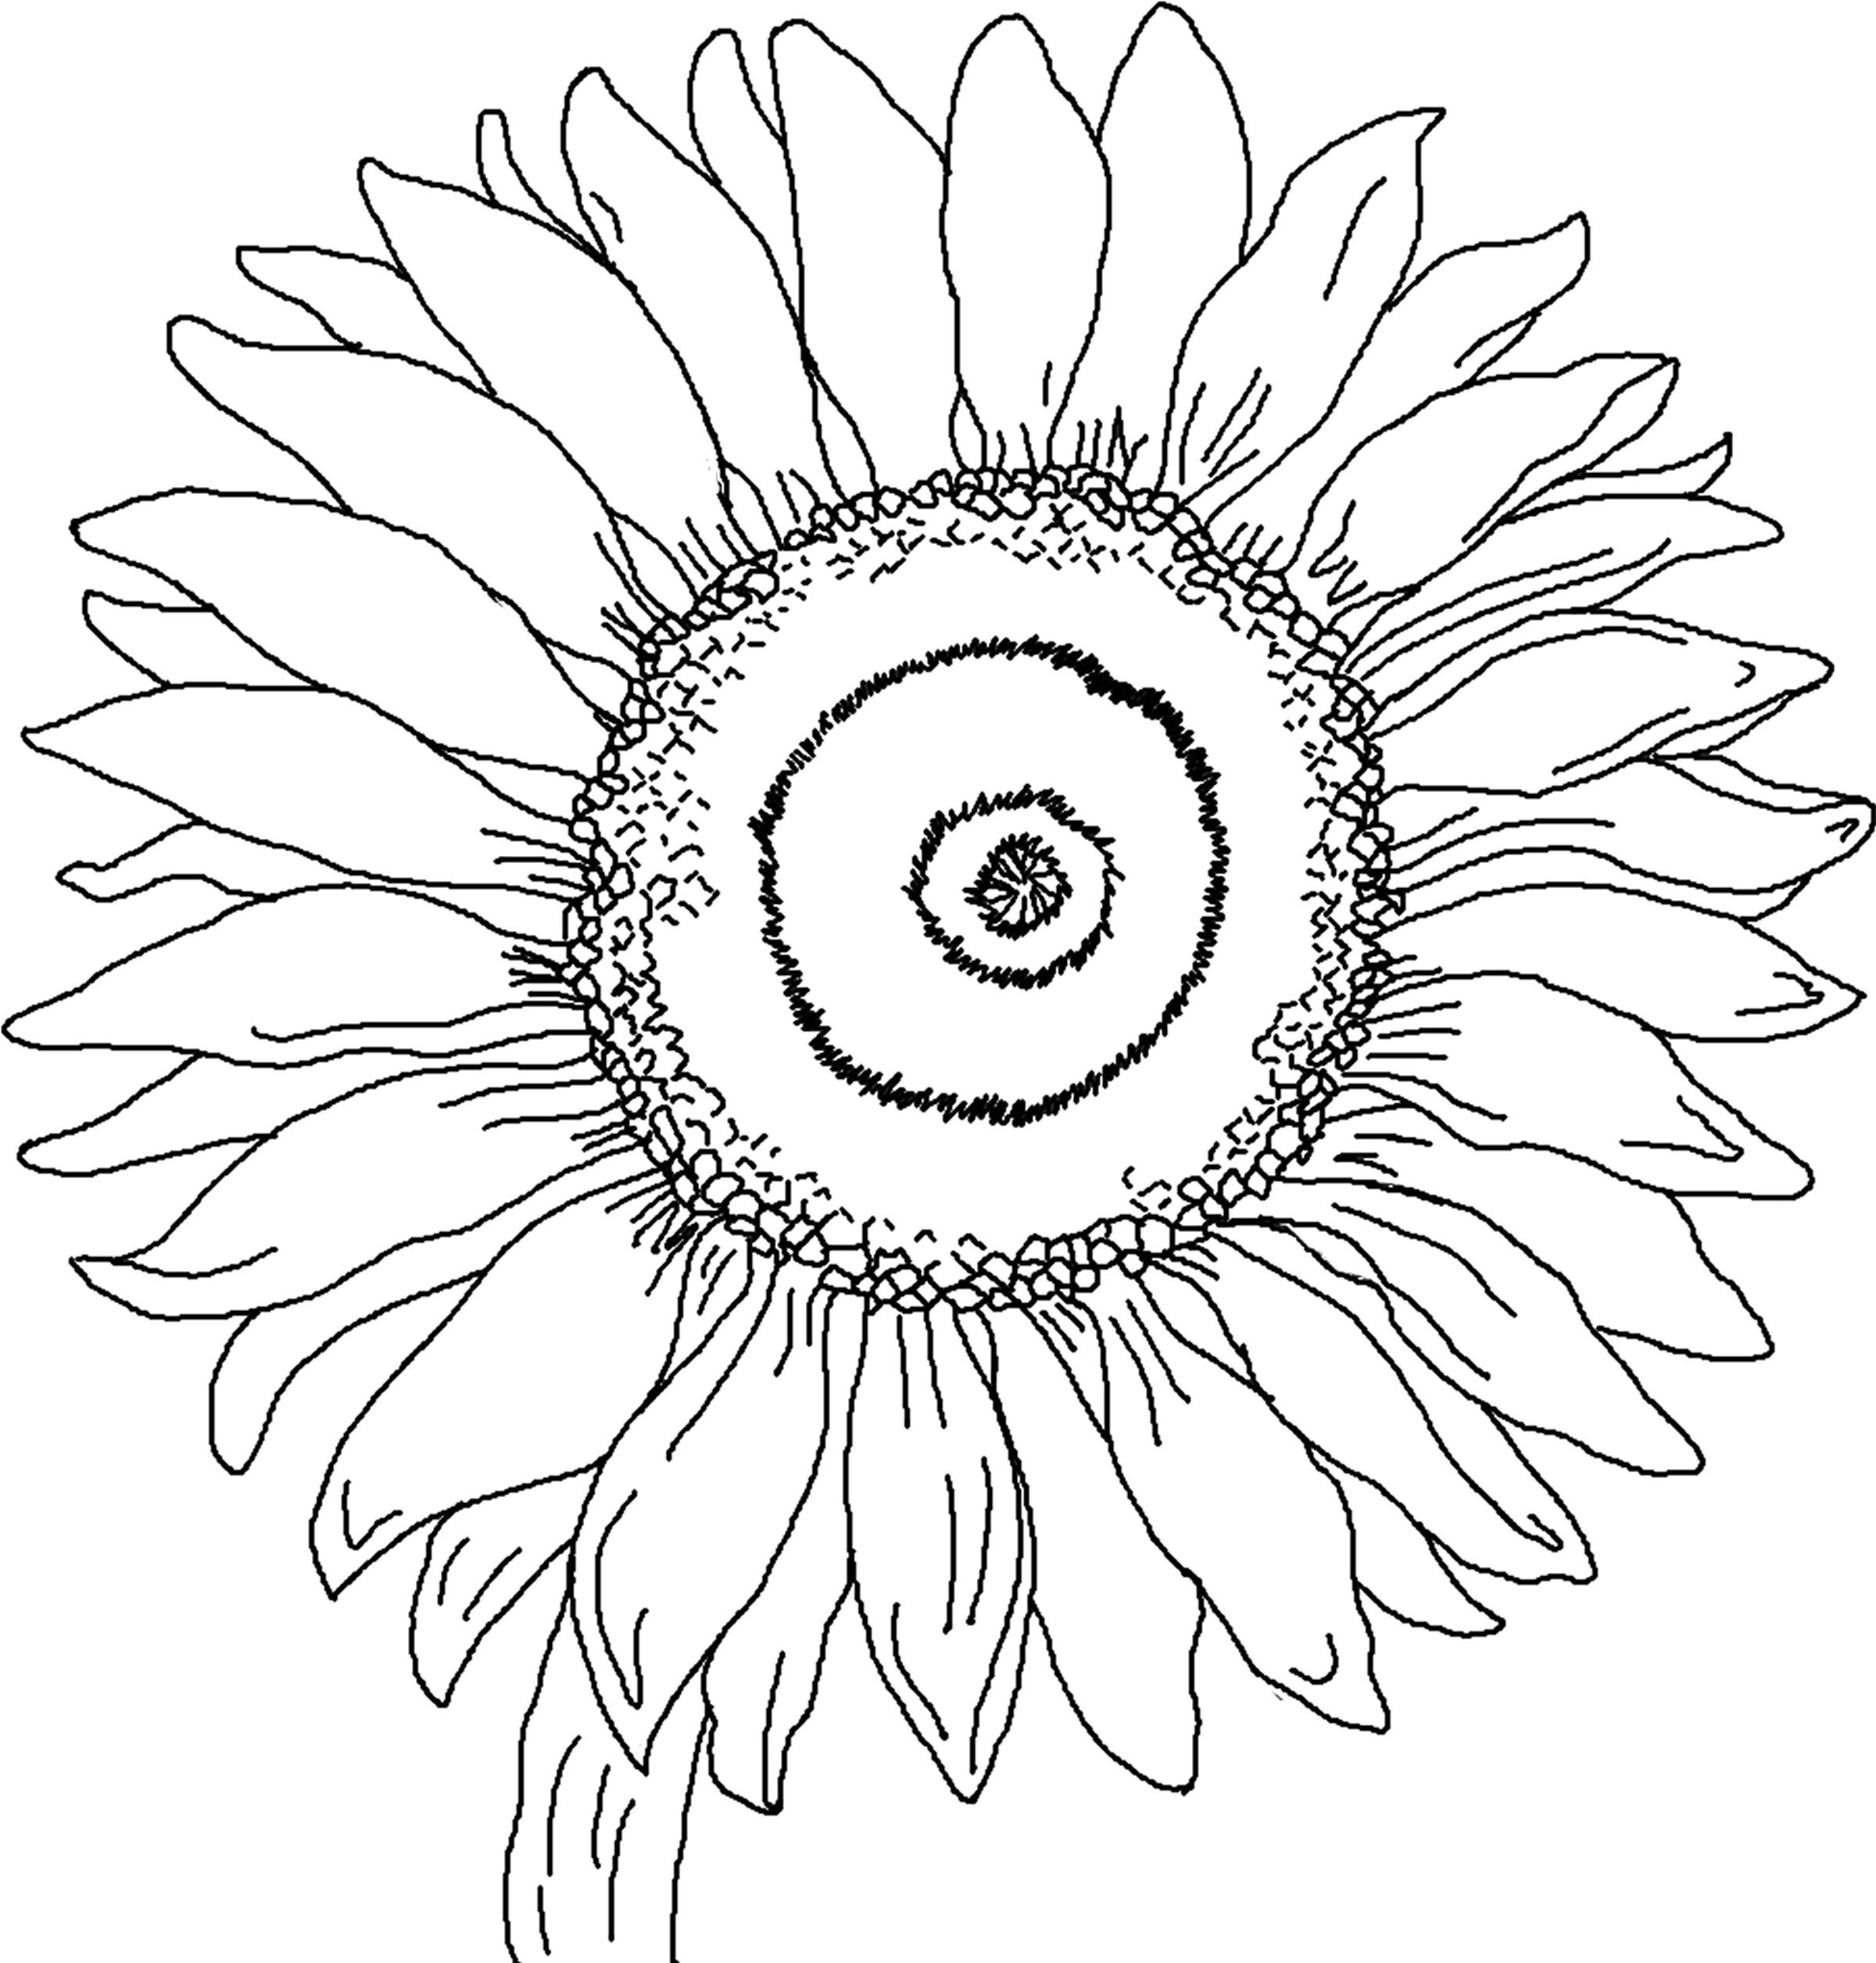 Sunflower Coloring Pages For Adults  Free Printable Sunflower Coloring Pages For Kids